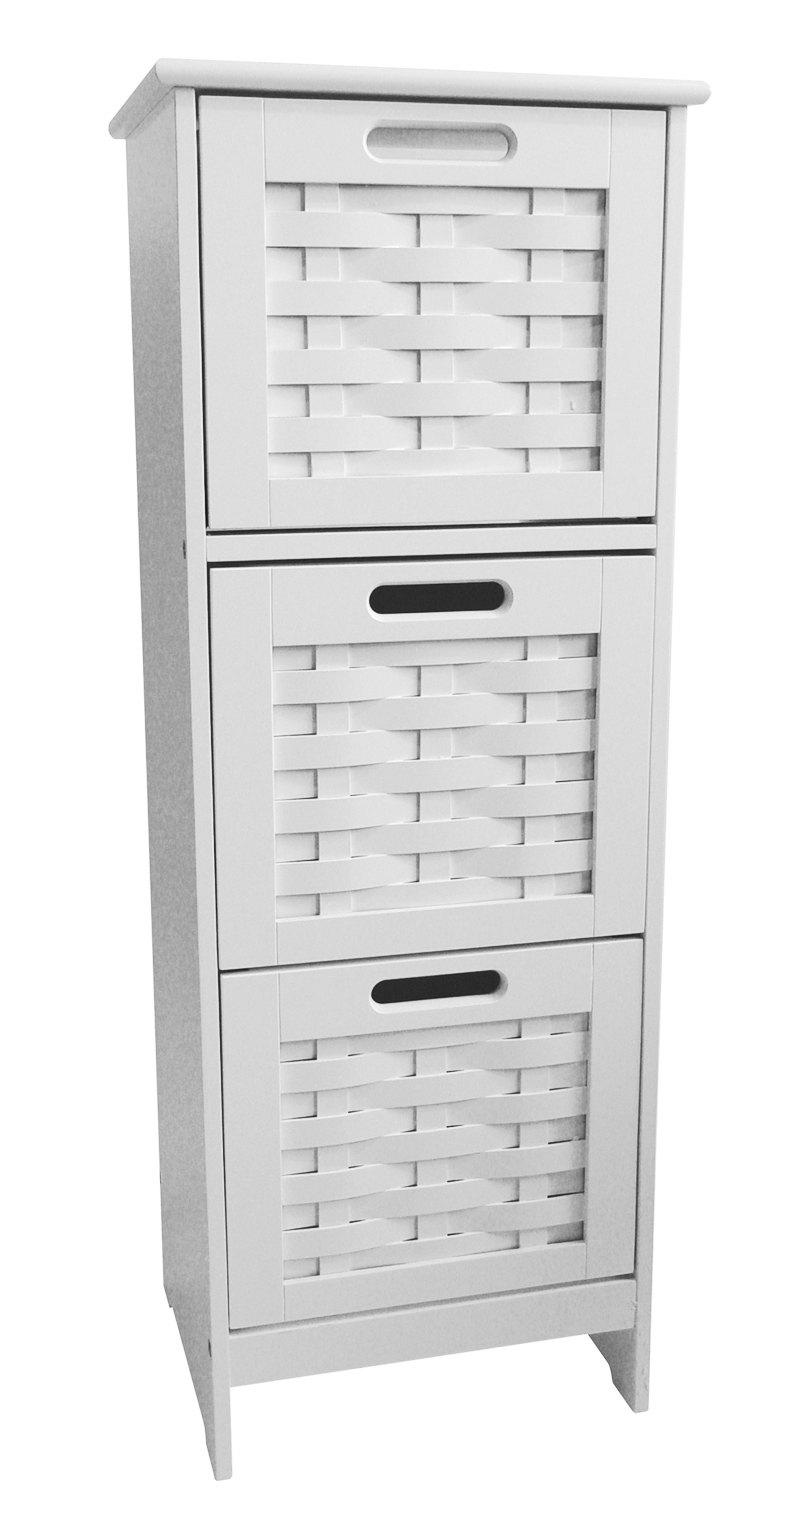 Details About 3 Drawer Slim Weave Storage Unit Bathroom Storage Cabinet White with sizing 787 X 1527